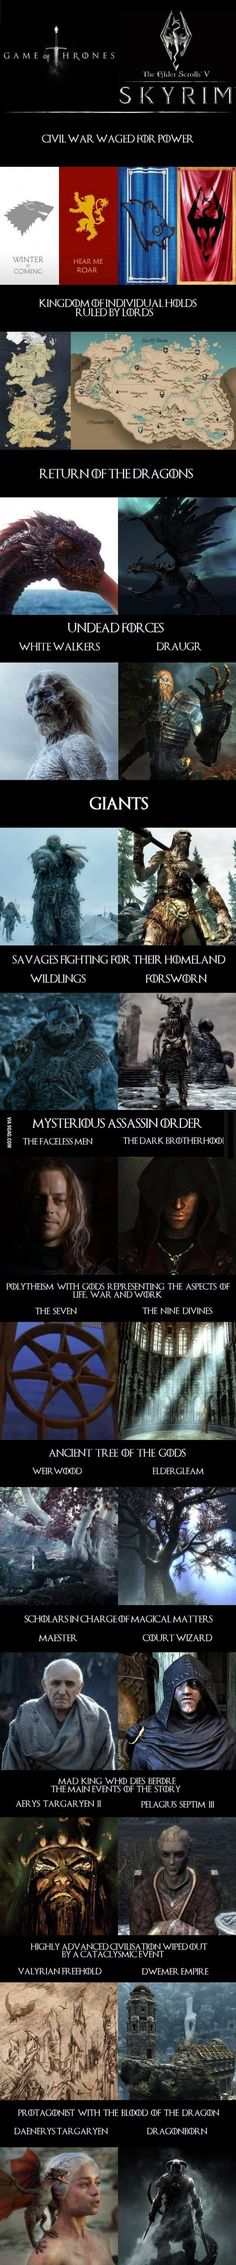 (*** http://BubbleCraze.org - Bubble Popping meets Tetris? OH YEAH! ***) The similarities of the Games of Thrones and Skyrim are astounding. Even the faces of the characters have analogous features. http://9gag.com/gag/aPG8rjB